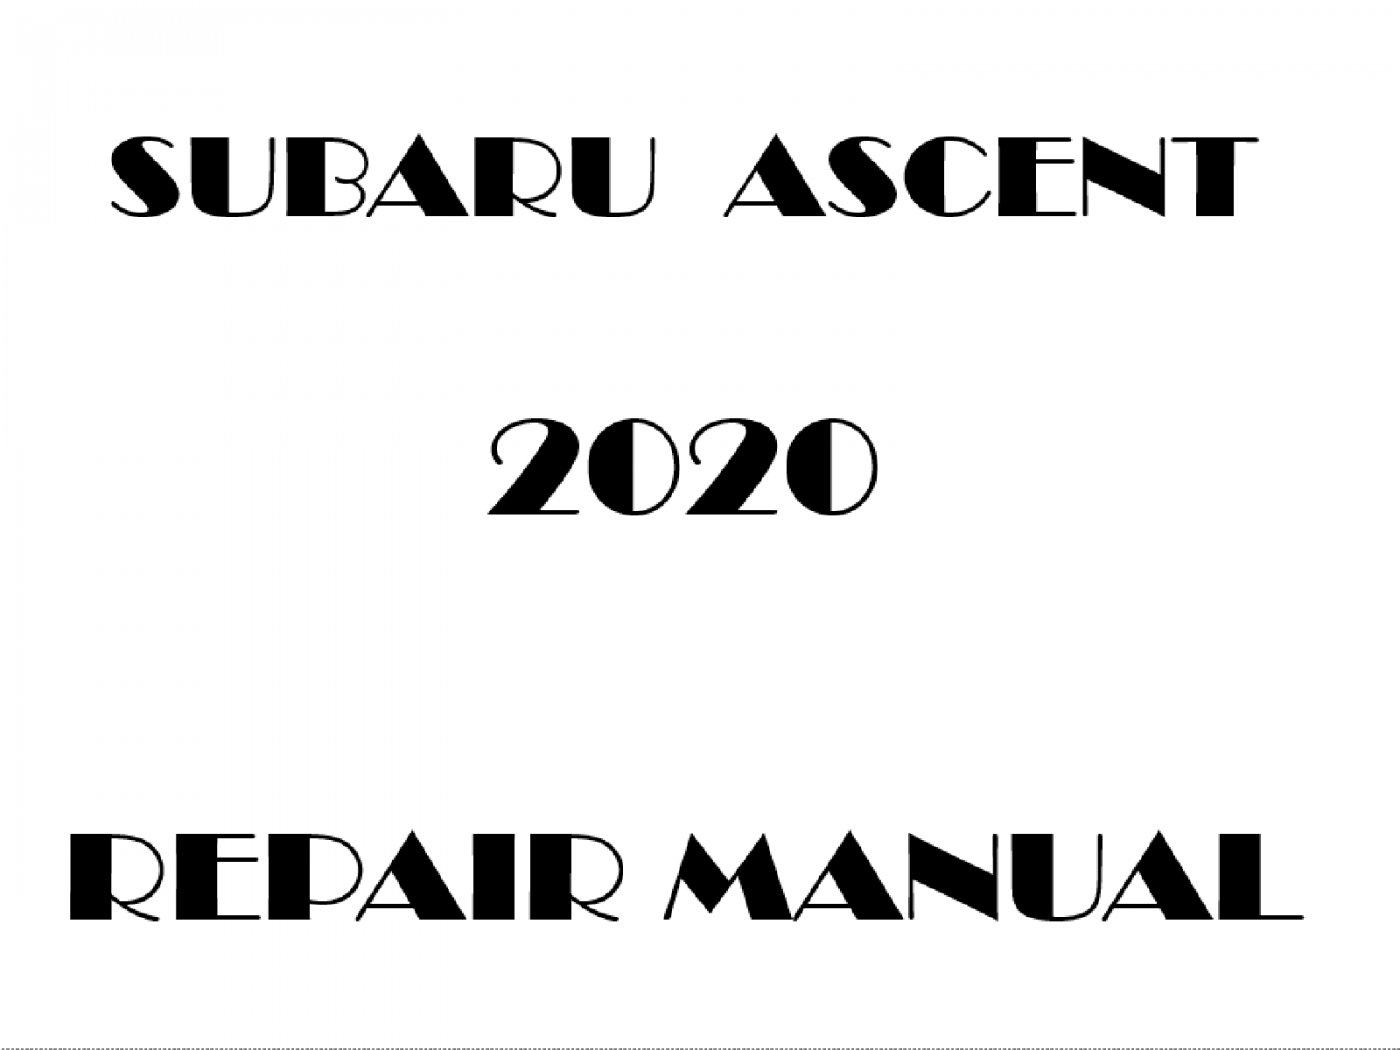 2020 Subaru Ascent repair manual